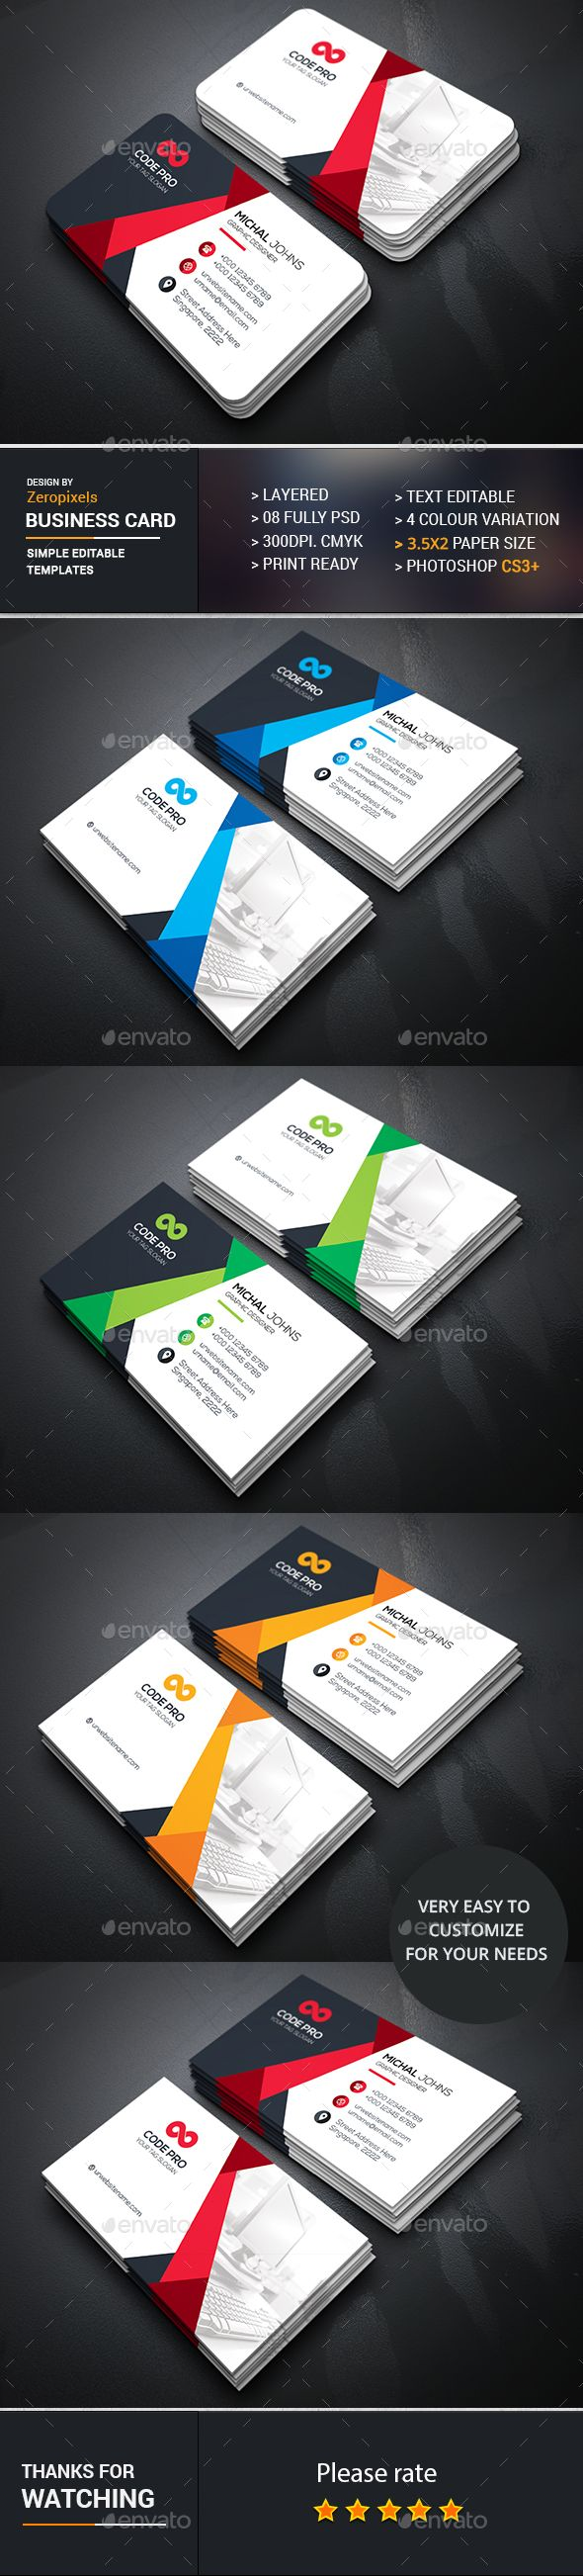 How Important Are Business Cards? | Corporate business, Card ...